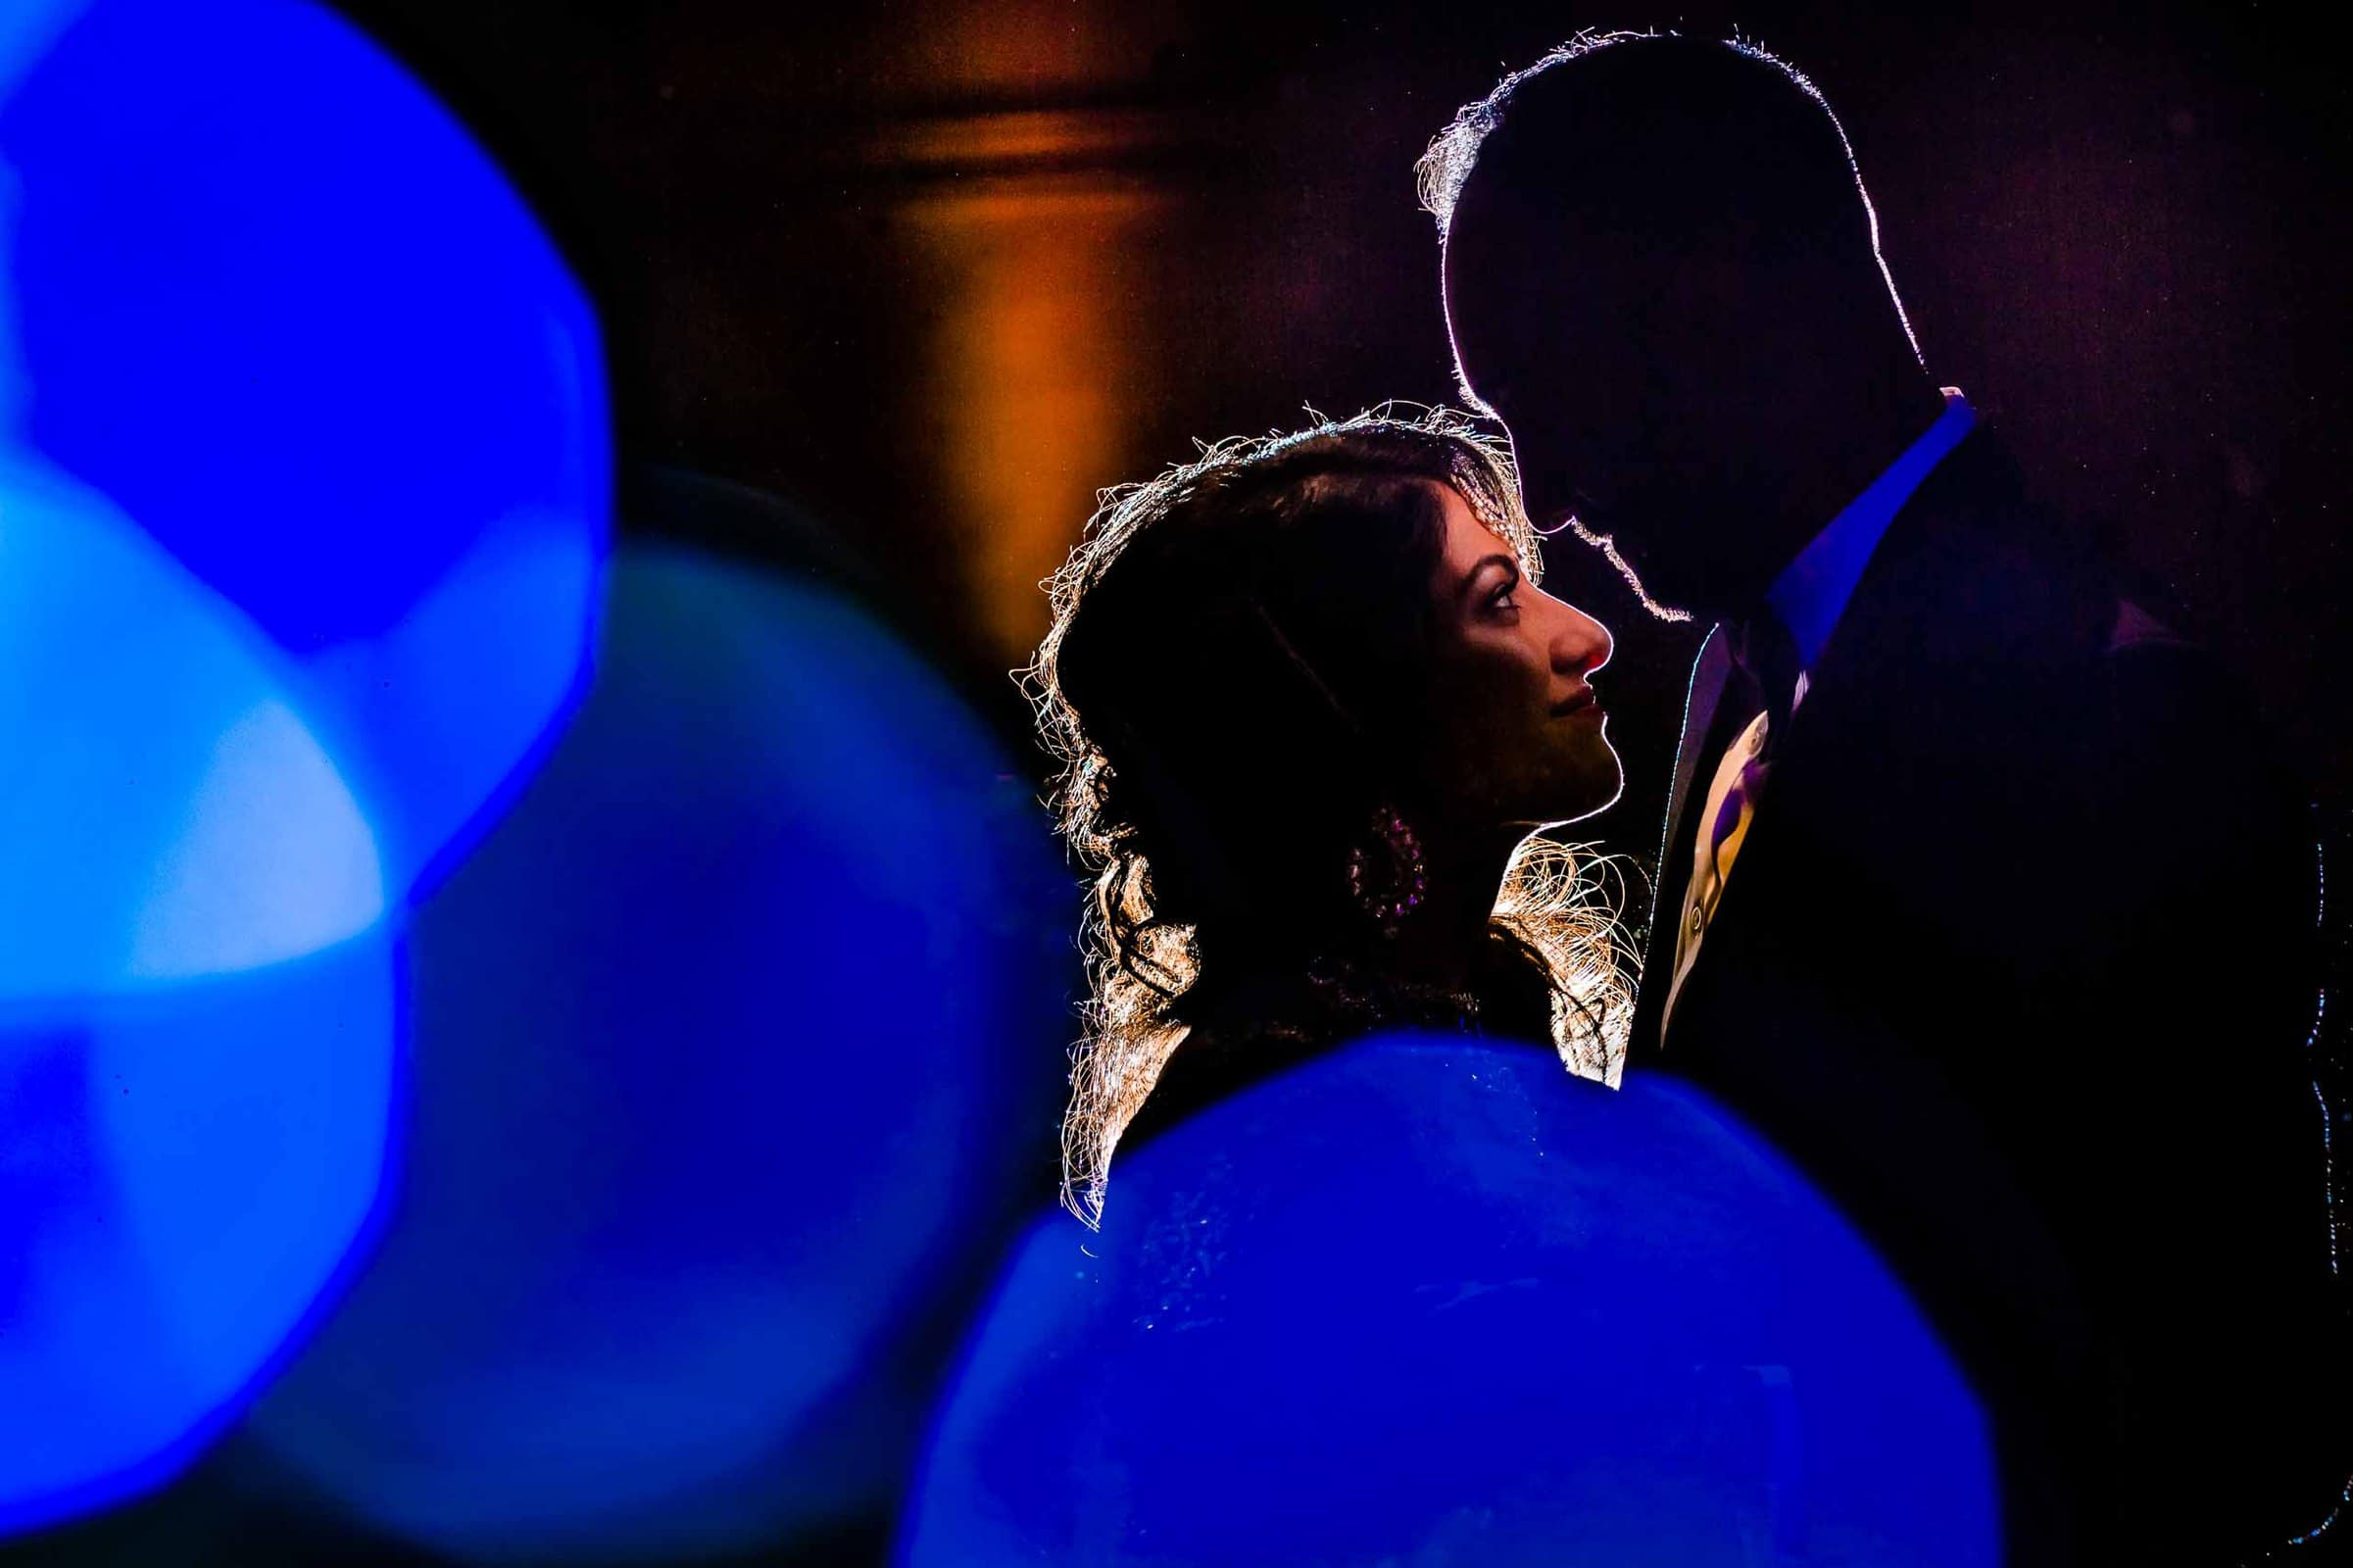 Epic dancing photo of Indian bride and groom during their Portland Art museum wedding.